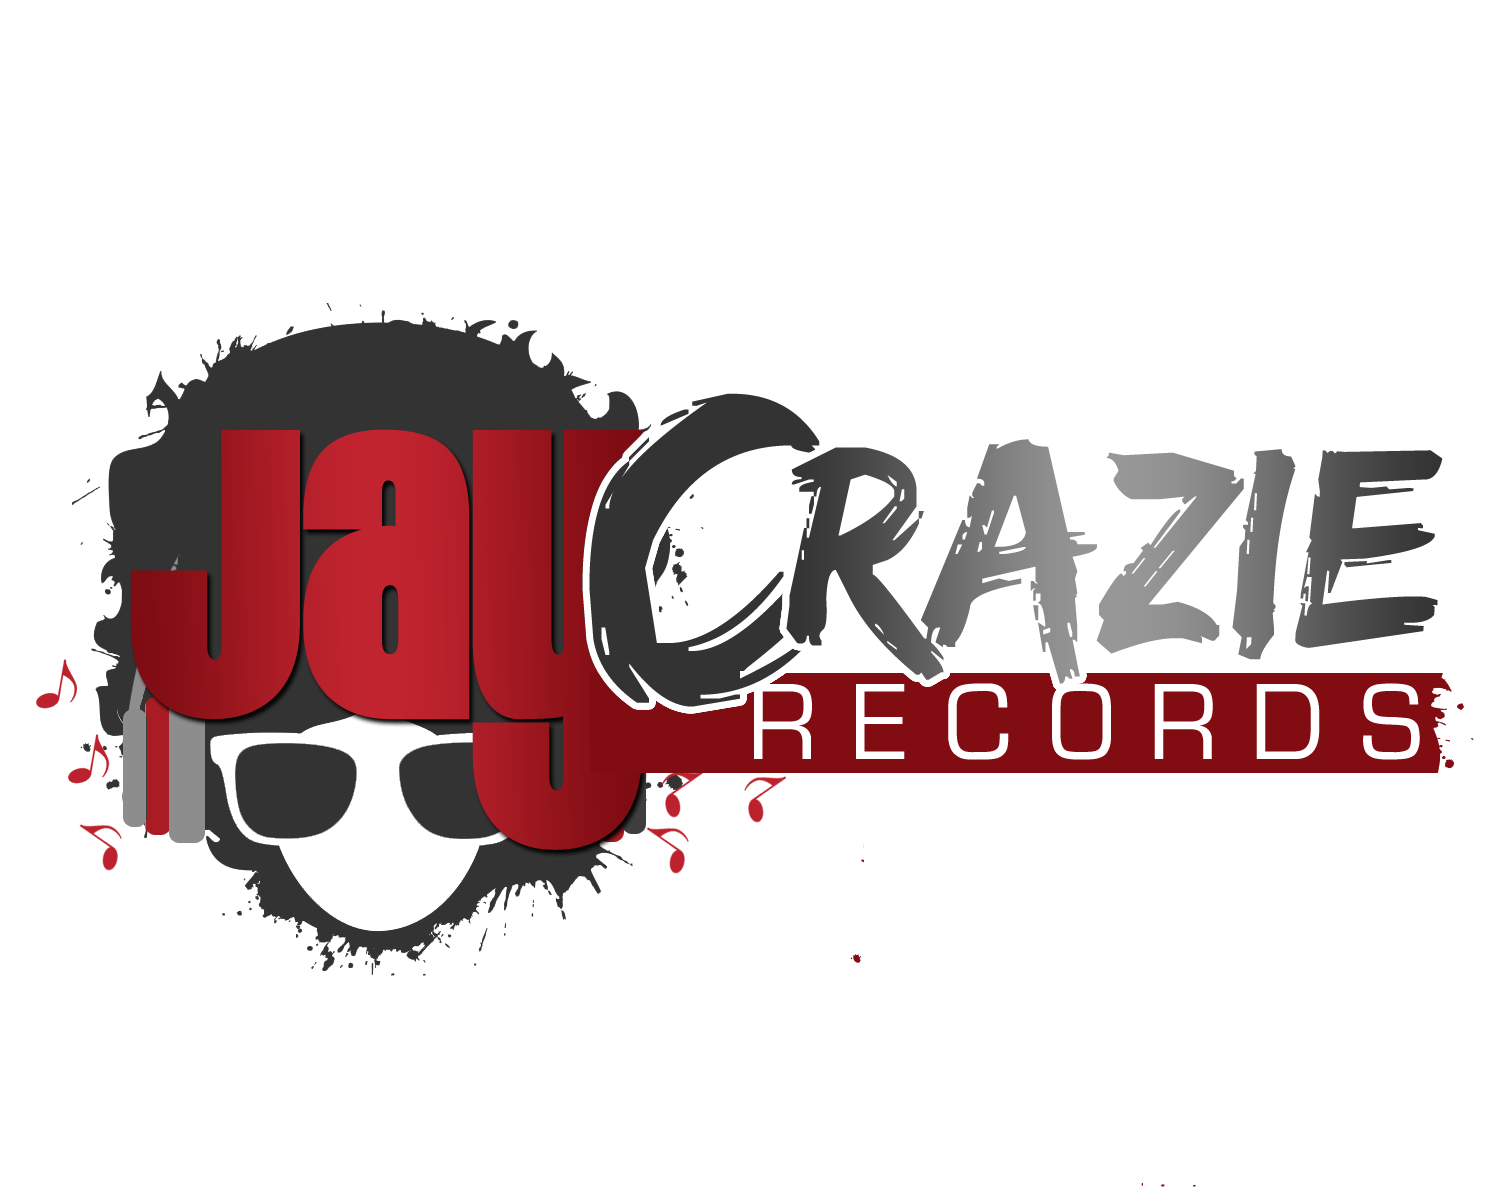 Jay-crazie-records-logo